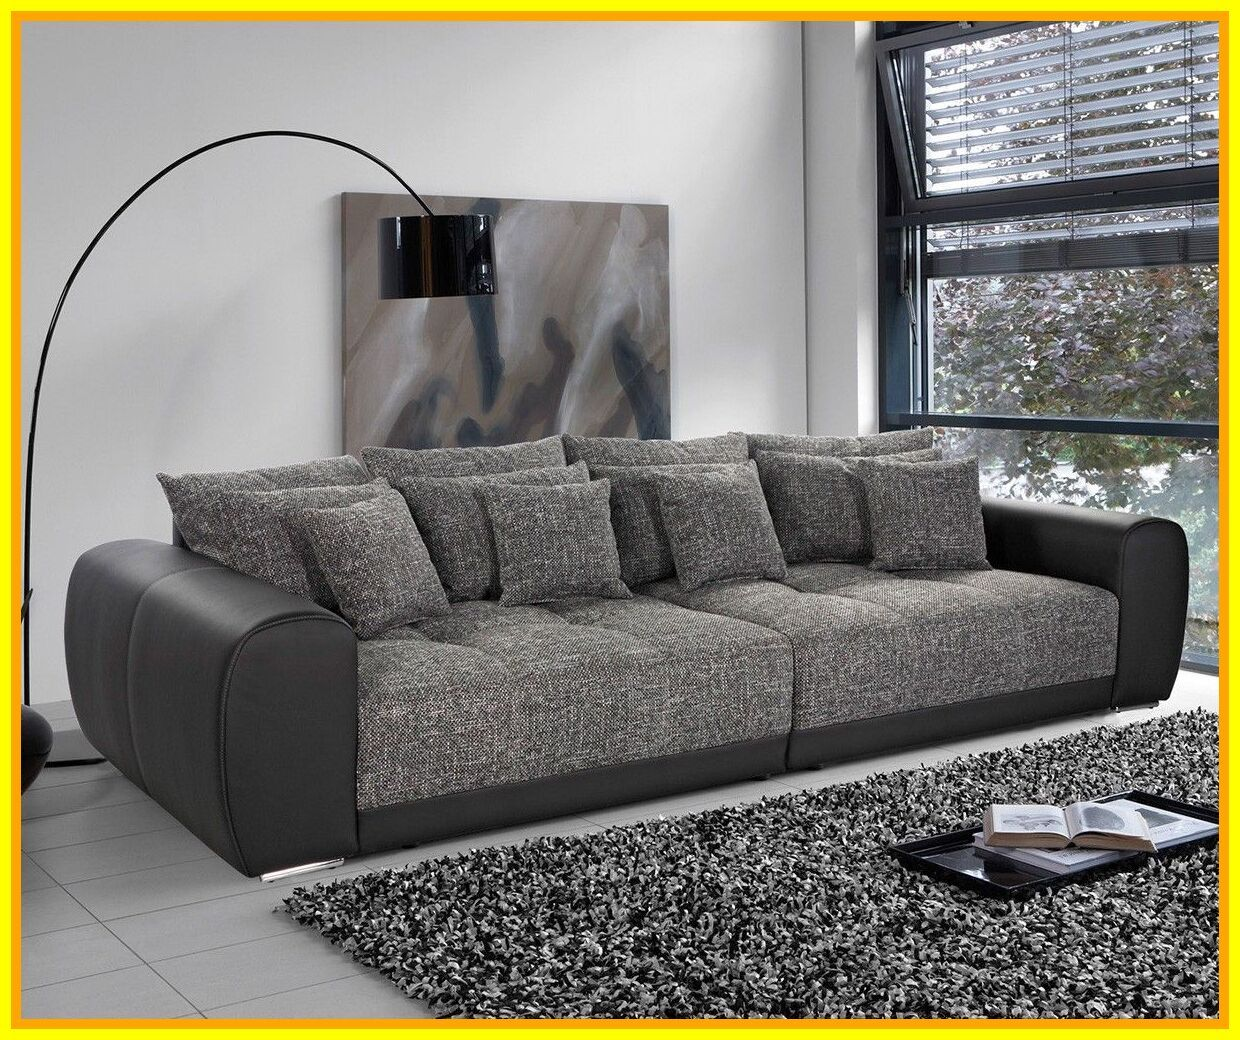 51 Reference Of Big Sofa Couch Kaufen In 2020 Big Sofas Sofa Home White Sofa Living Room